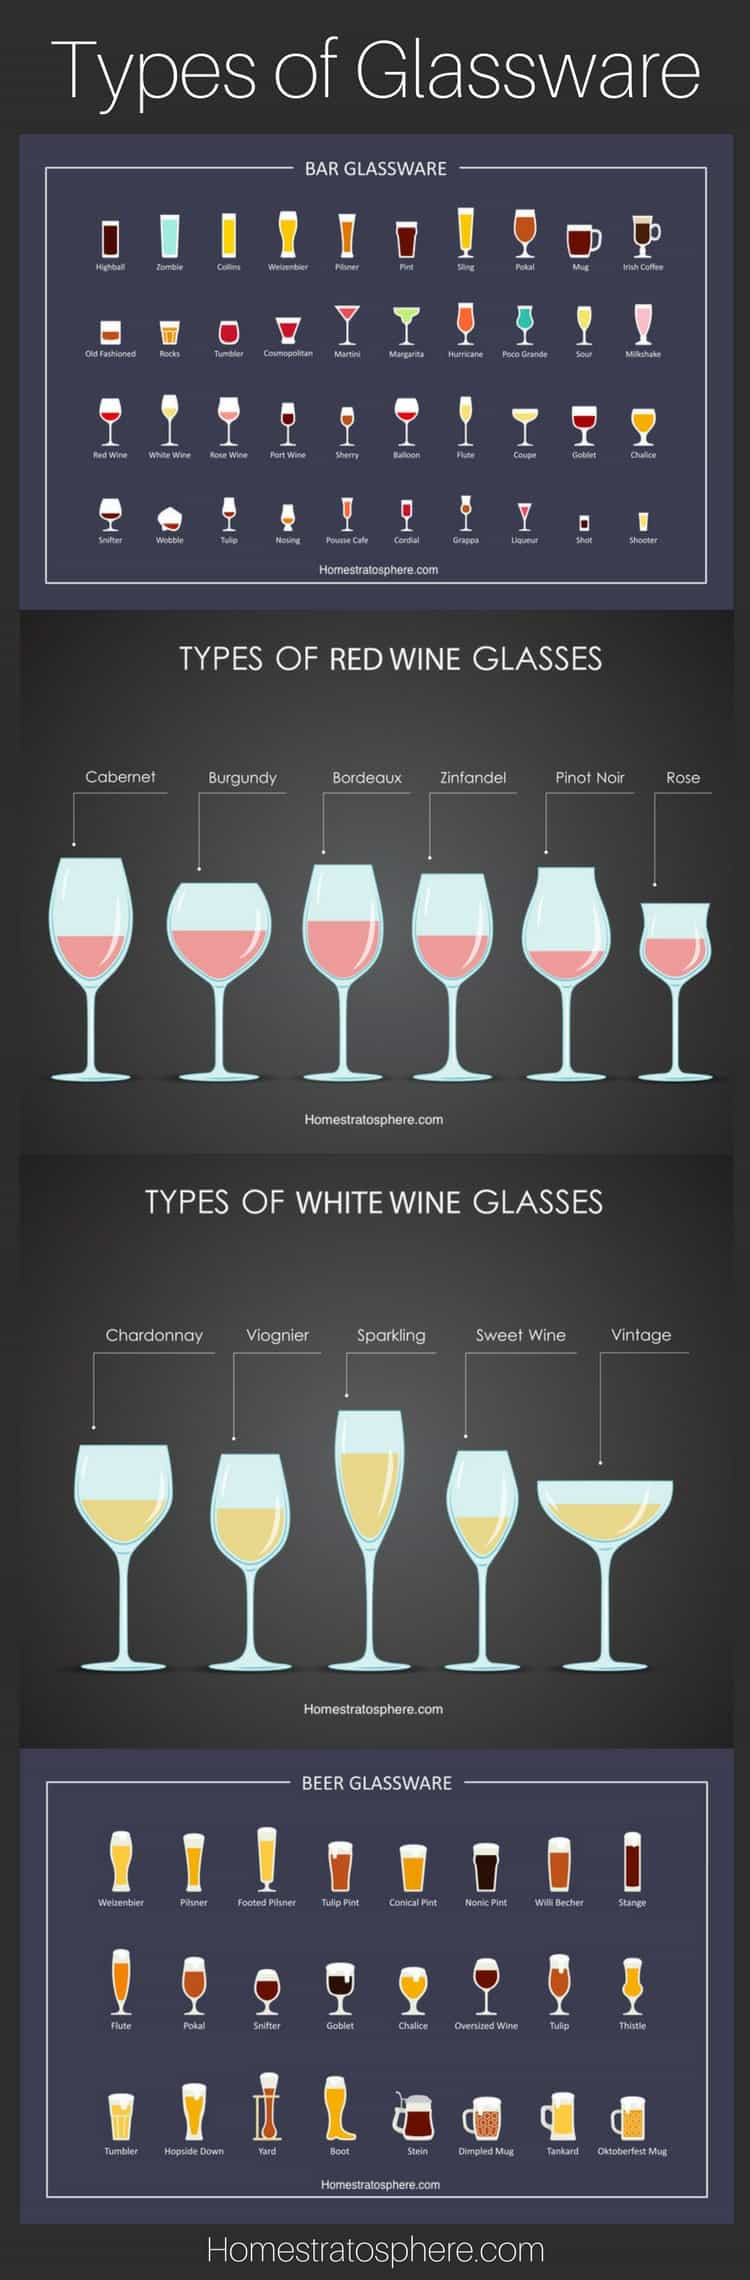 Chart: Types of Glassware